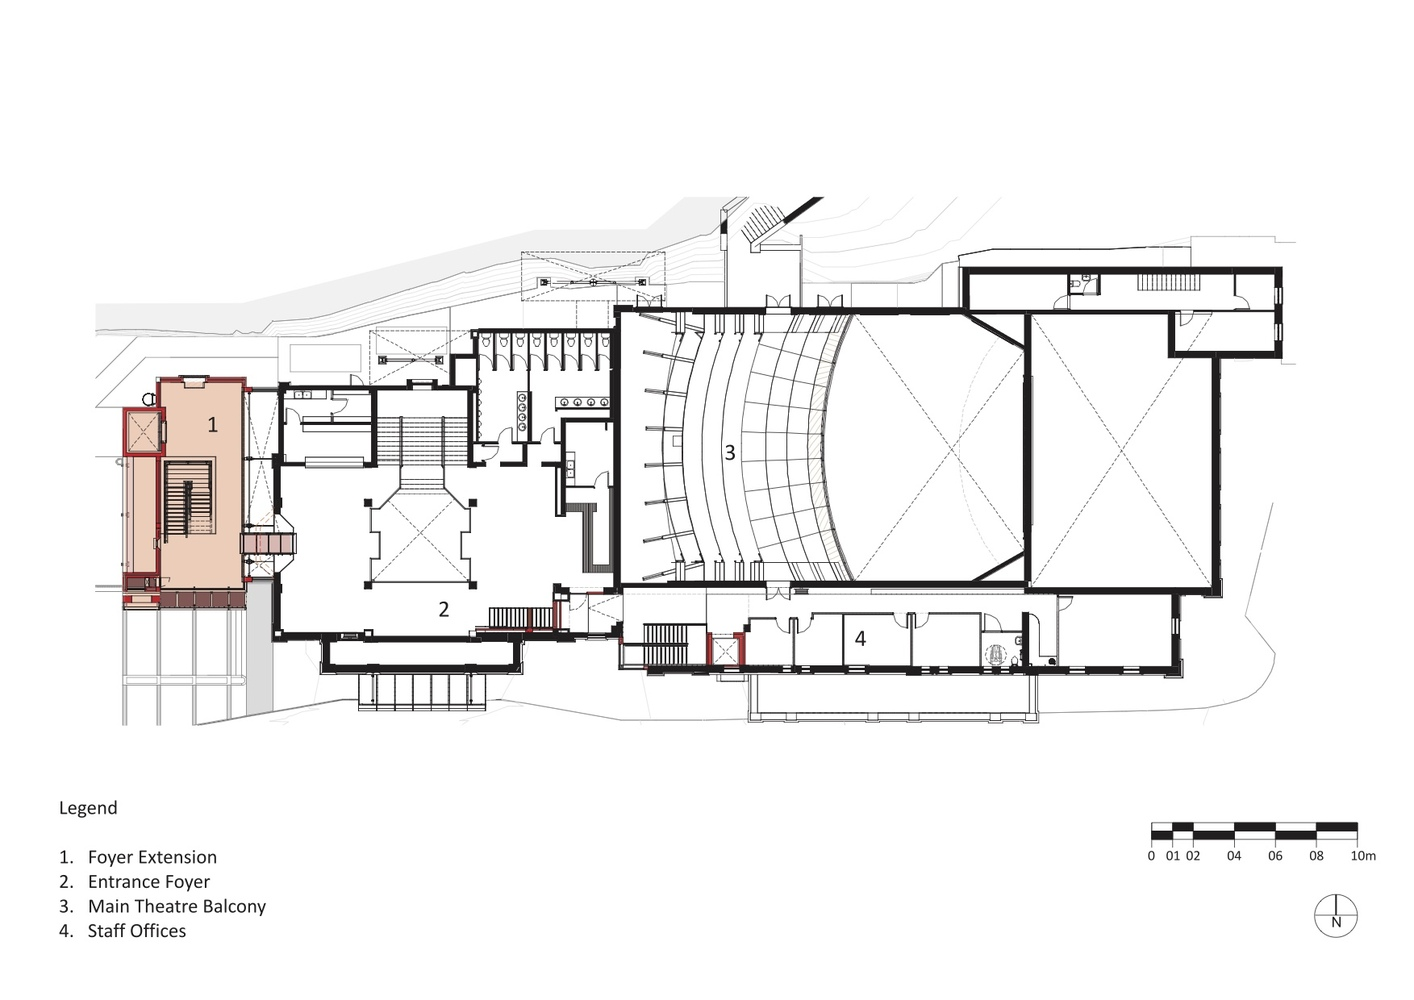 Breathtaking 1st Floor Oslo Opera House Plan Pictures